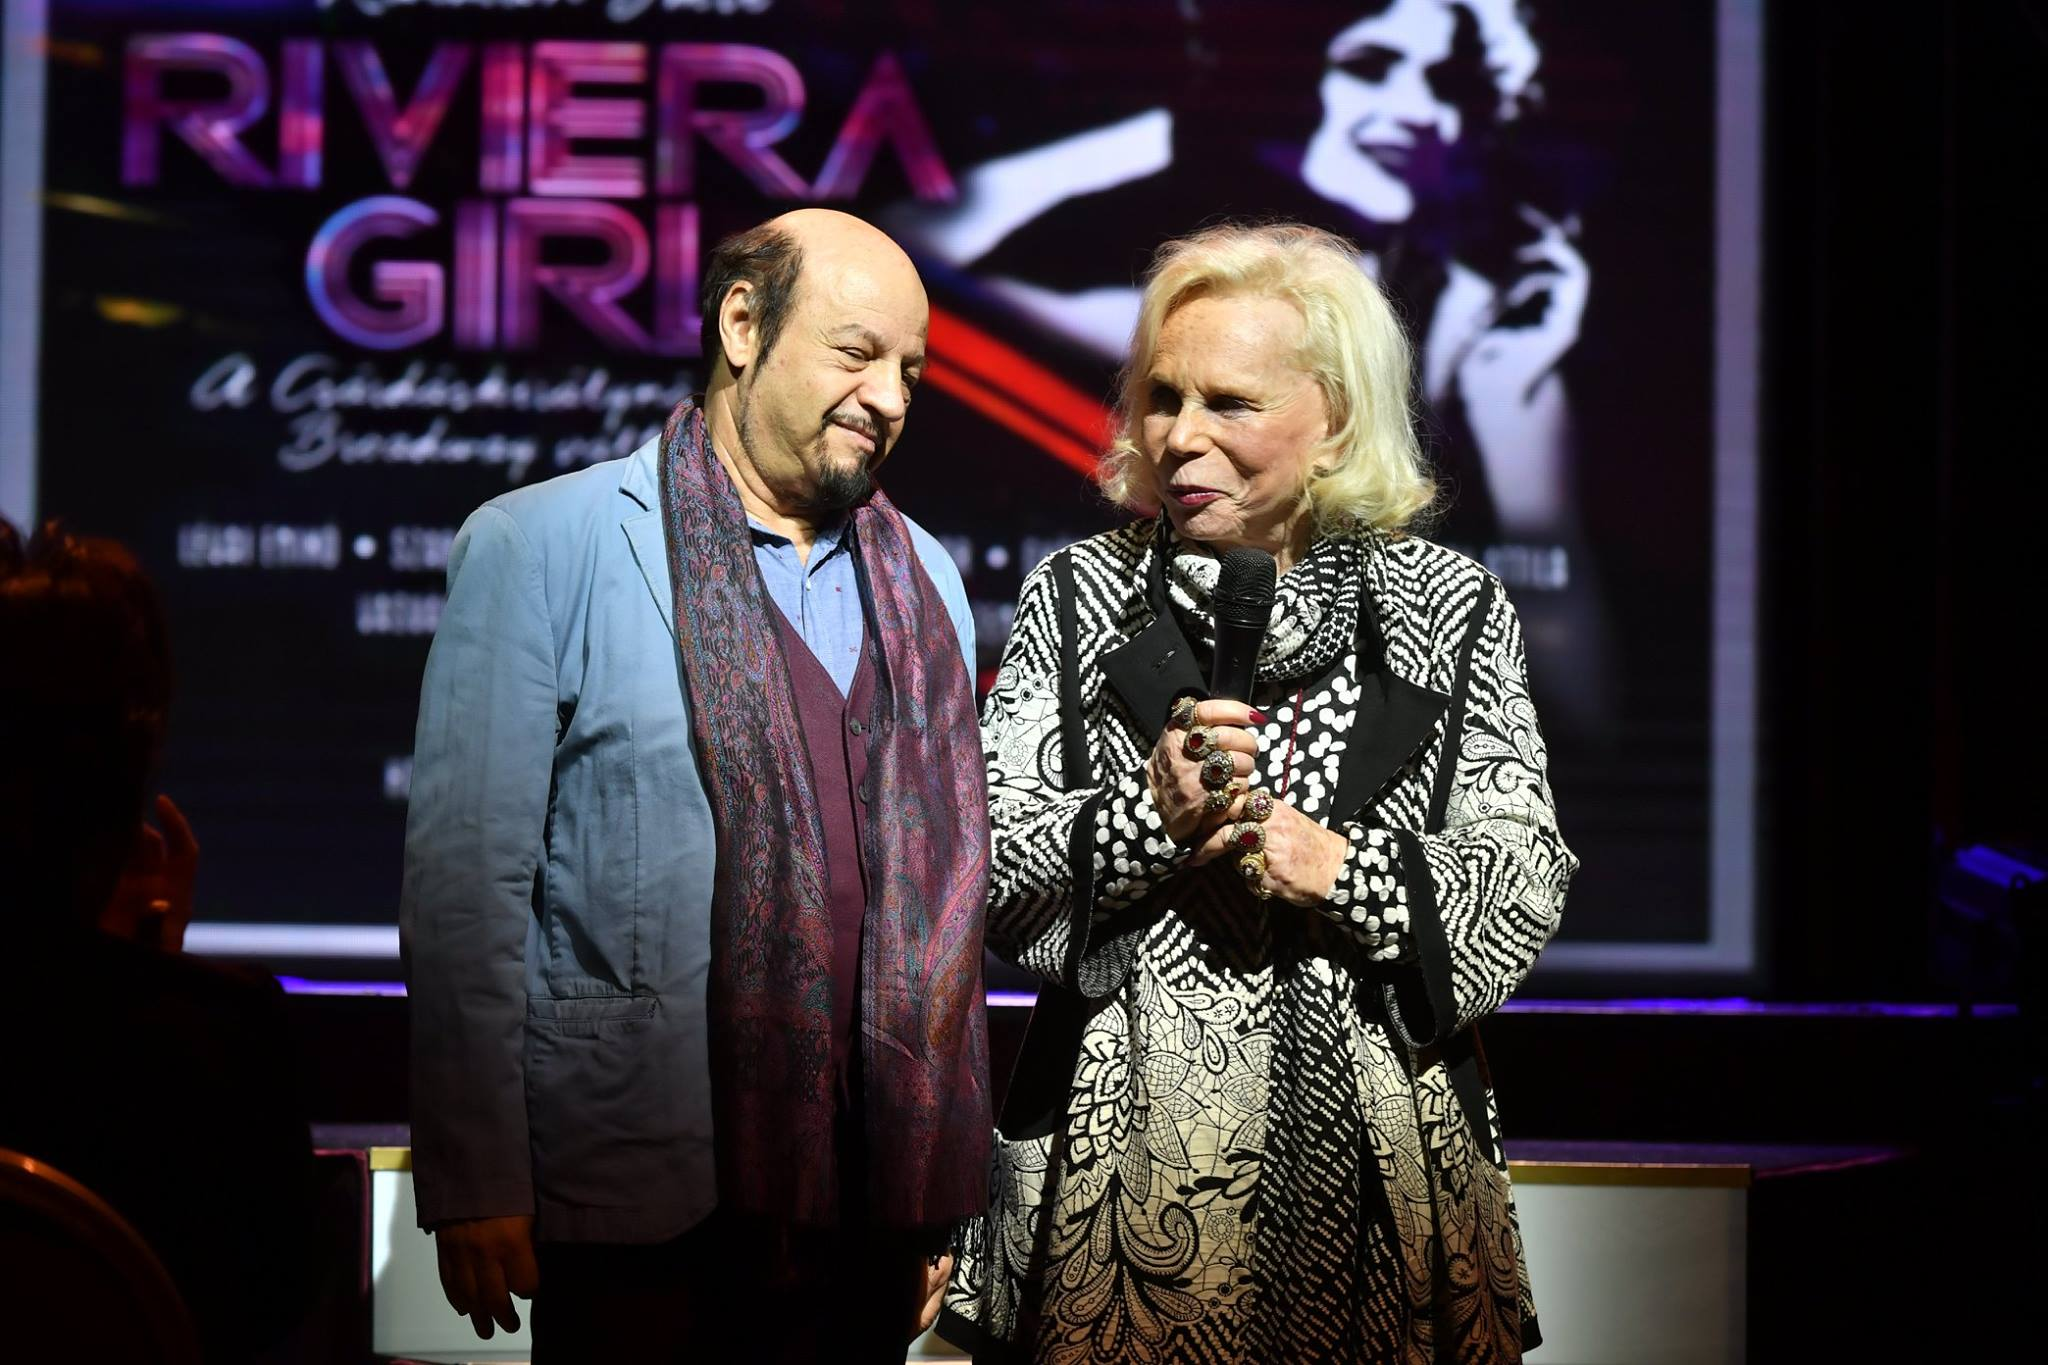 Kalman's daughter Yvonne and stage director KERO during the opening night speeches at the new Imre Kálmán Theatre. (Photo: Budapesti Operettszínház)